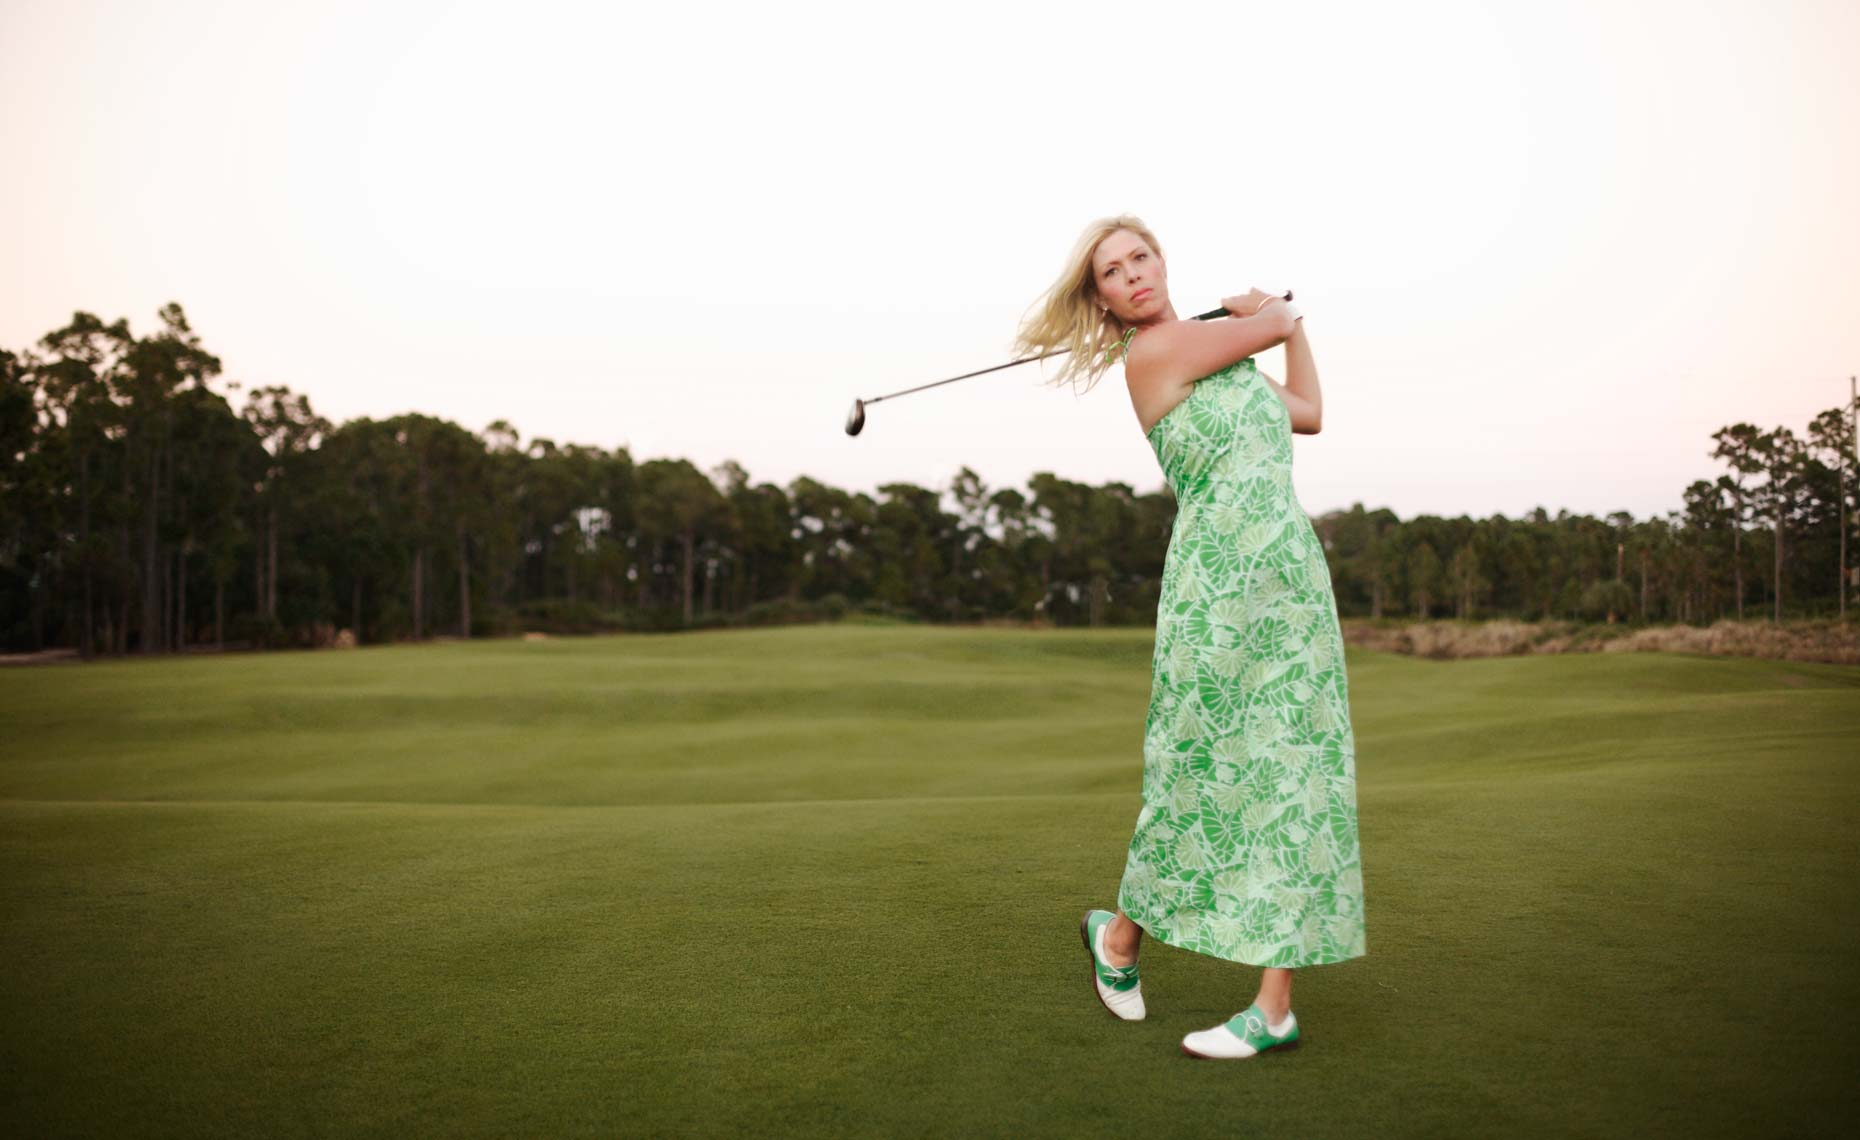 03-michelle-mcgann-dusk-fairway-2